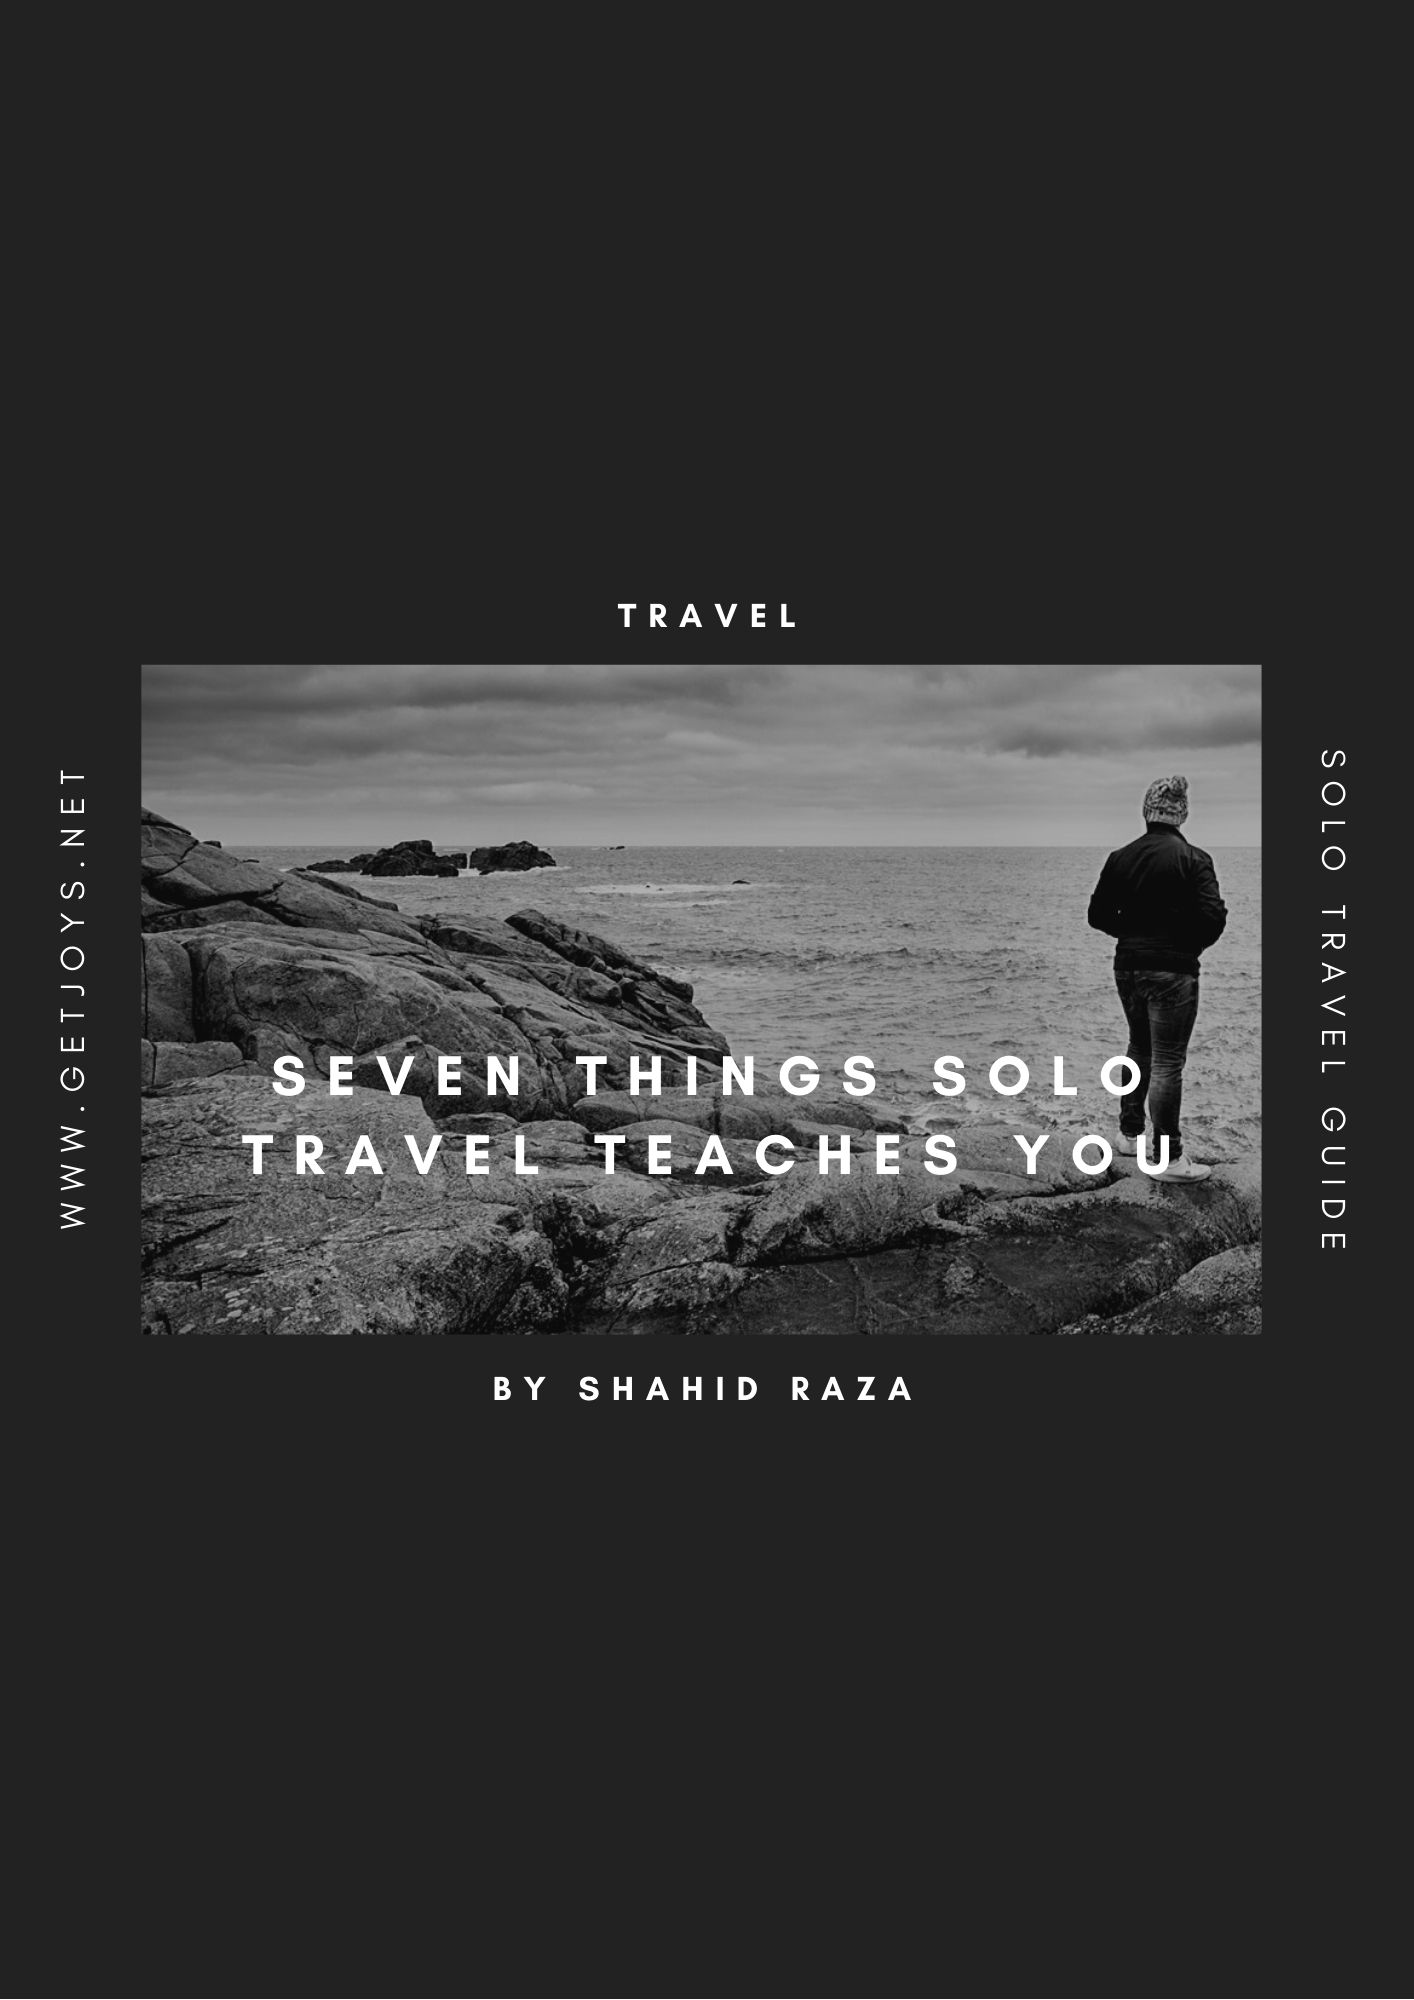 7 Things Solo Travel Teaches You